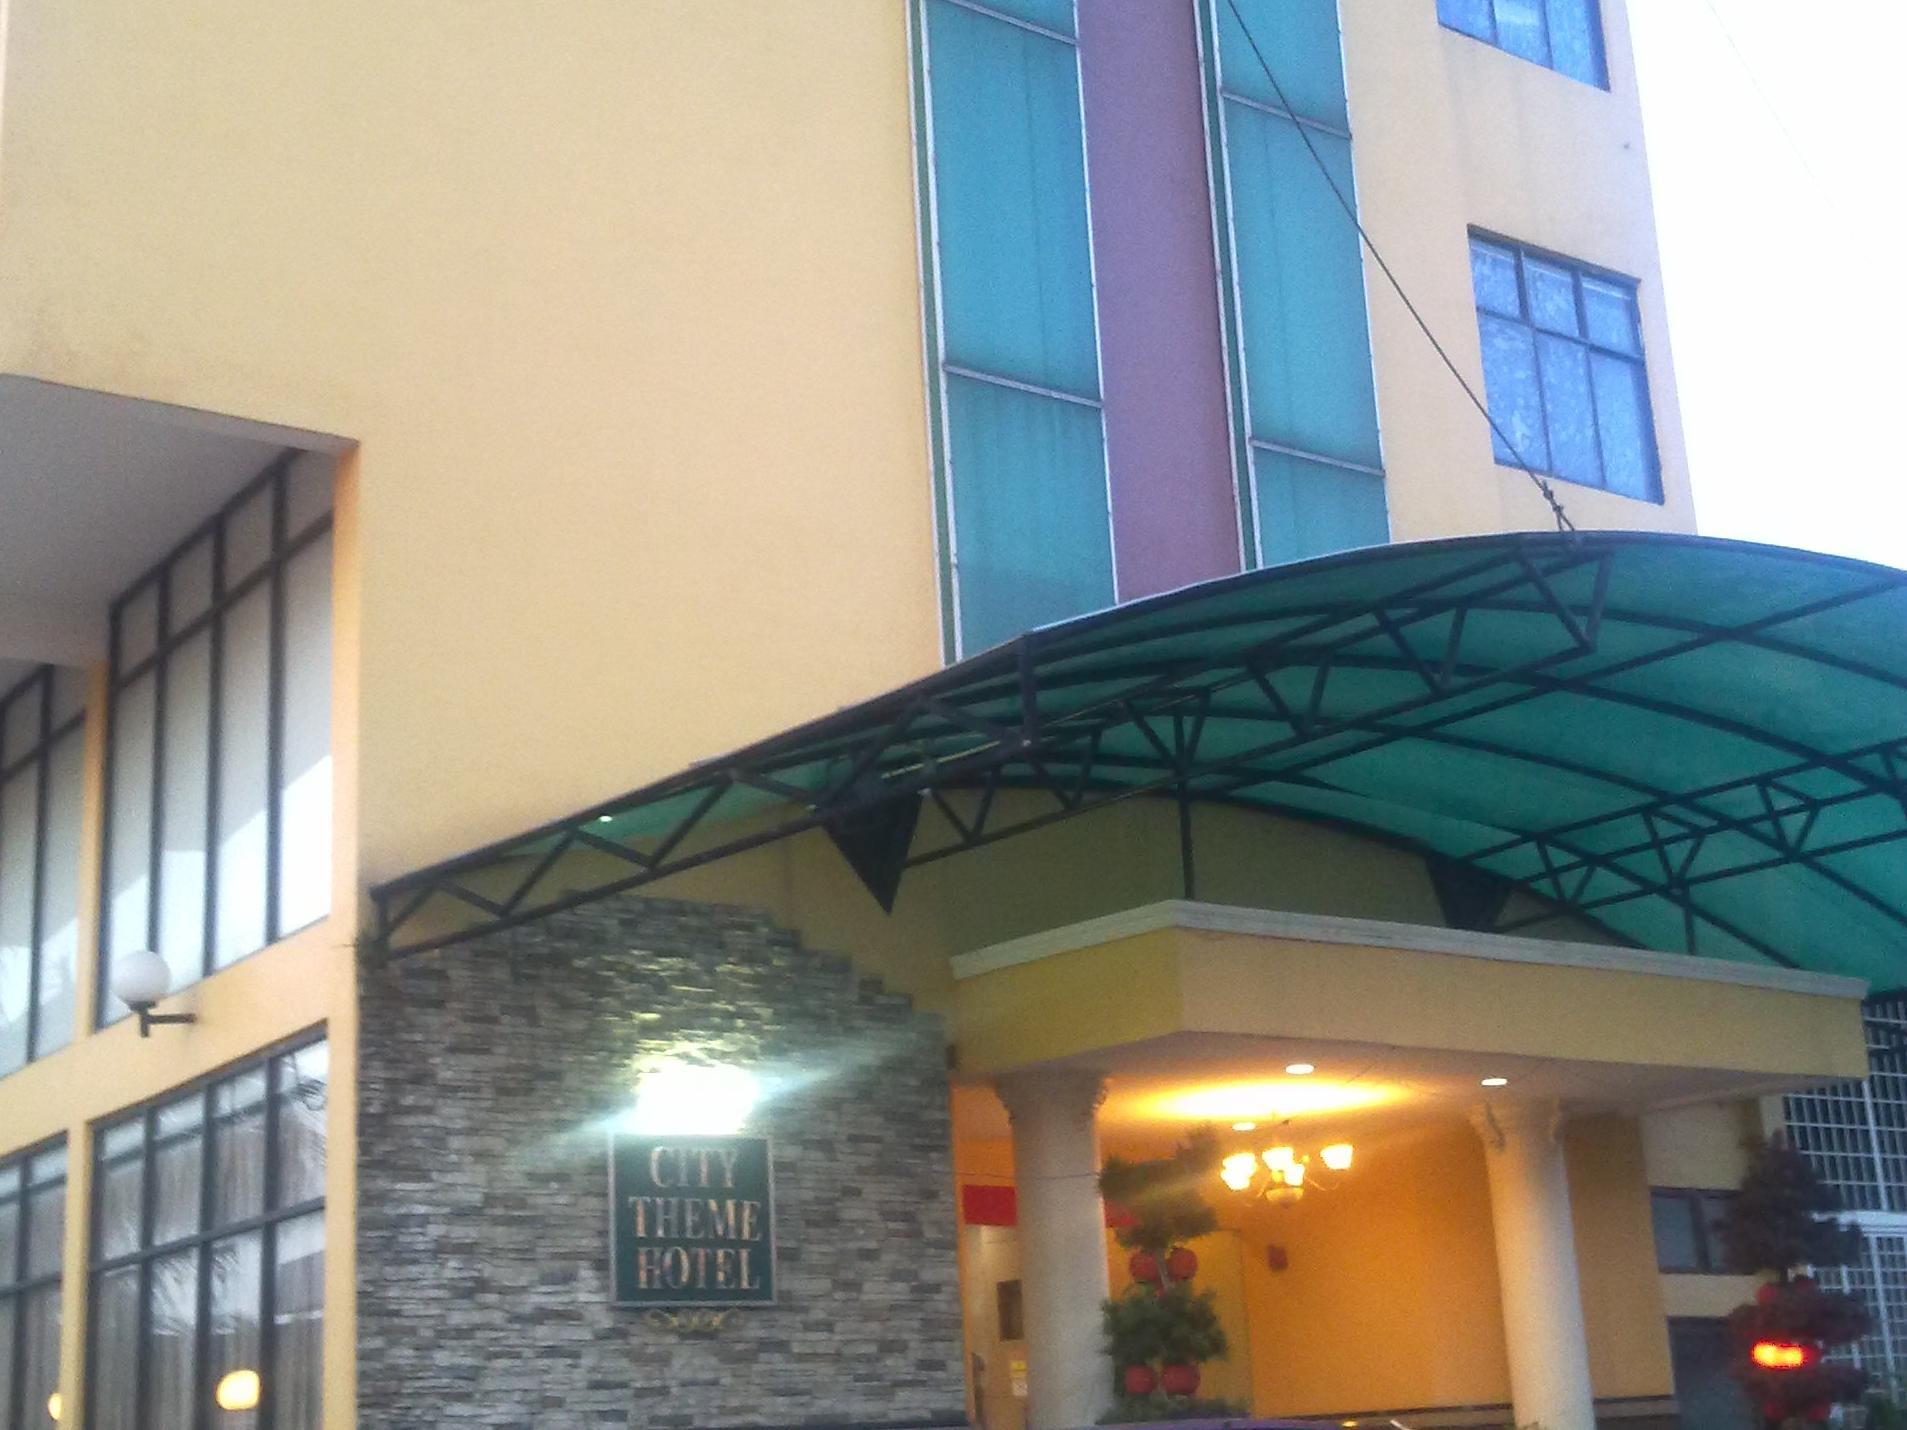 City Theme Hotel - Hotels and Accommodation in Malaysia, Asia